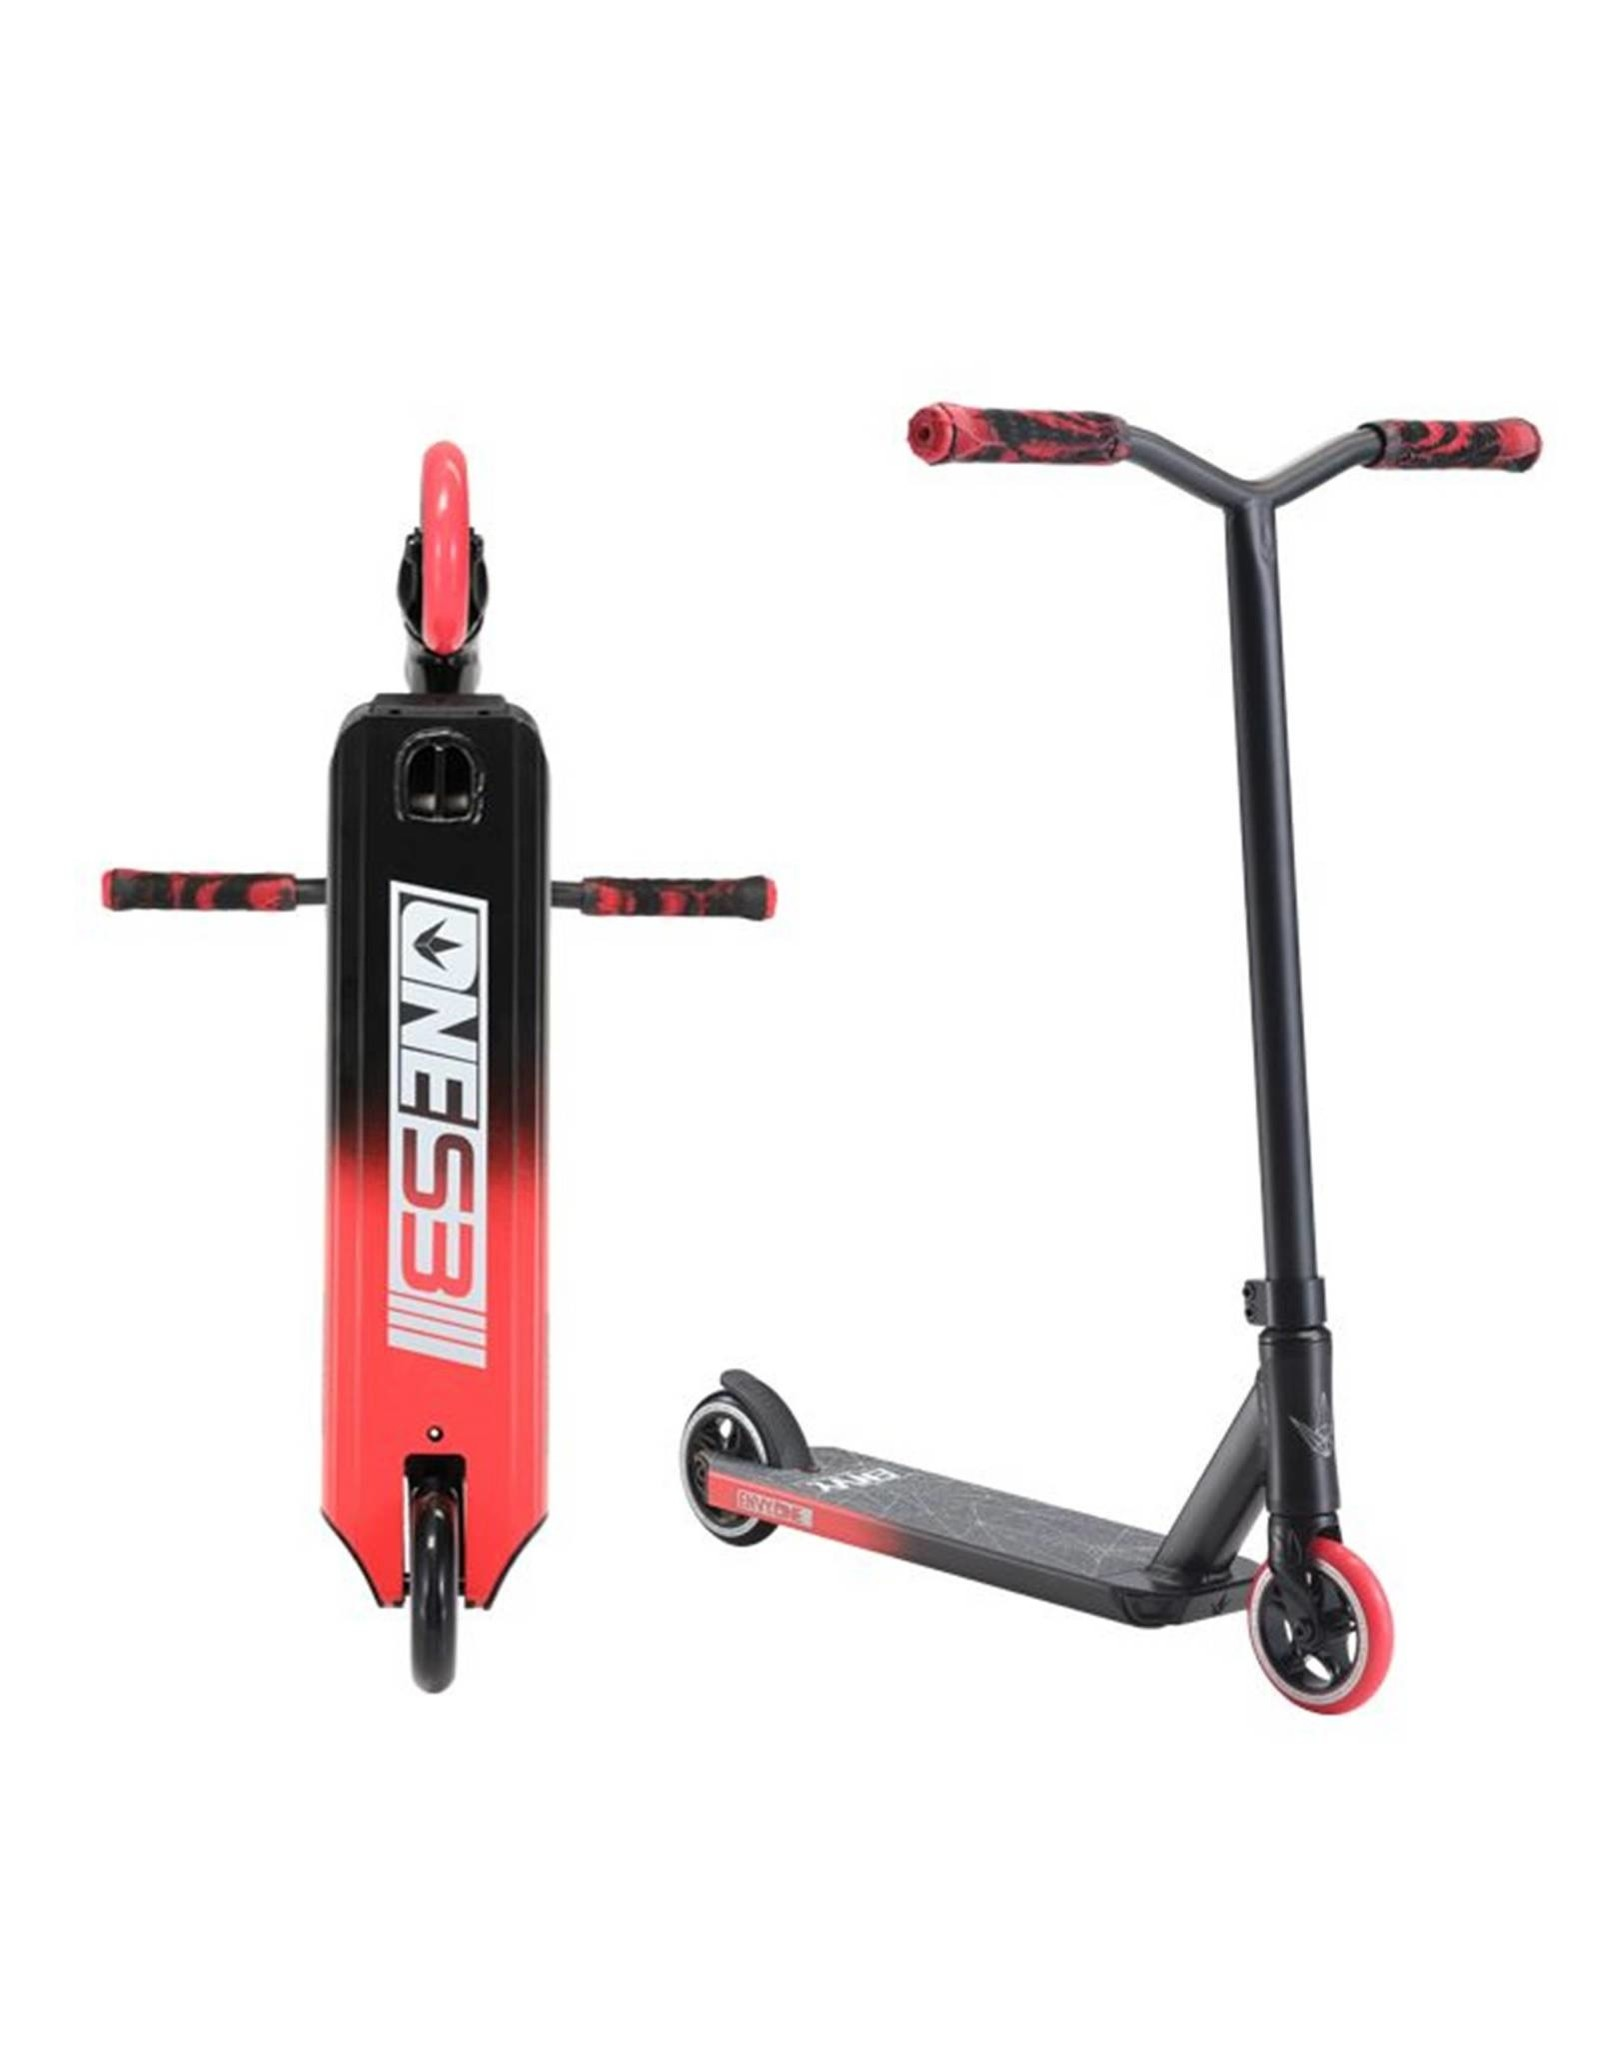 ENVY Envy One S3 Scooter Black/Red